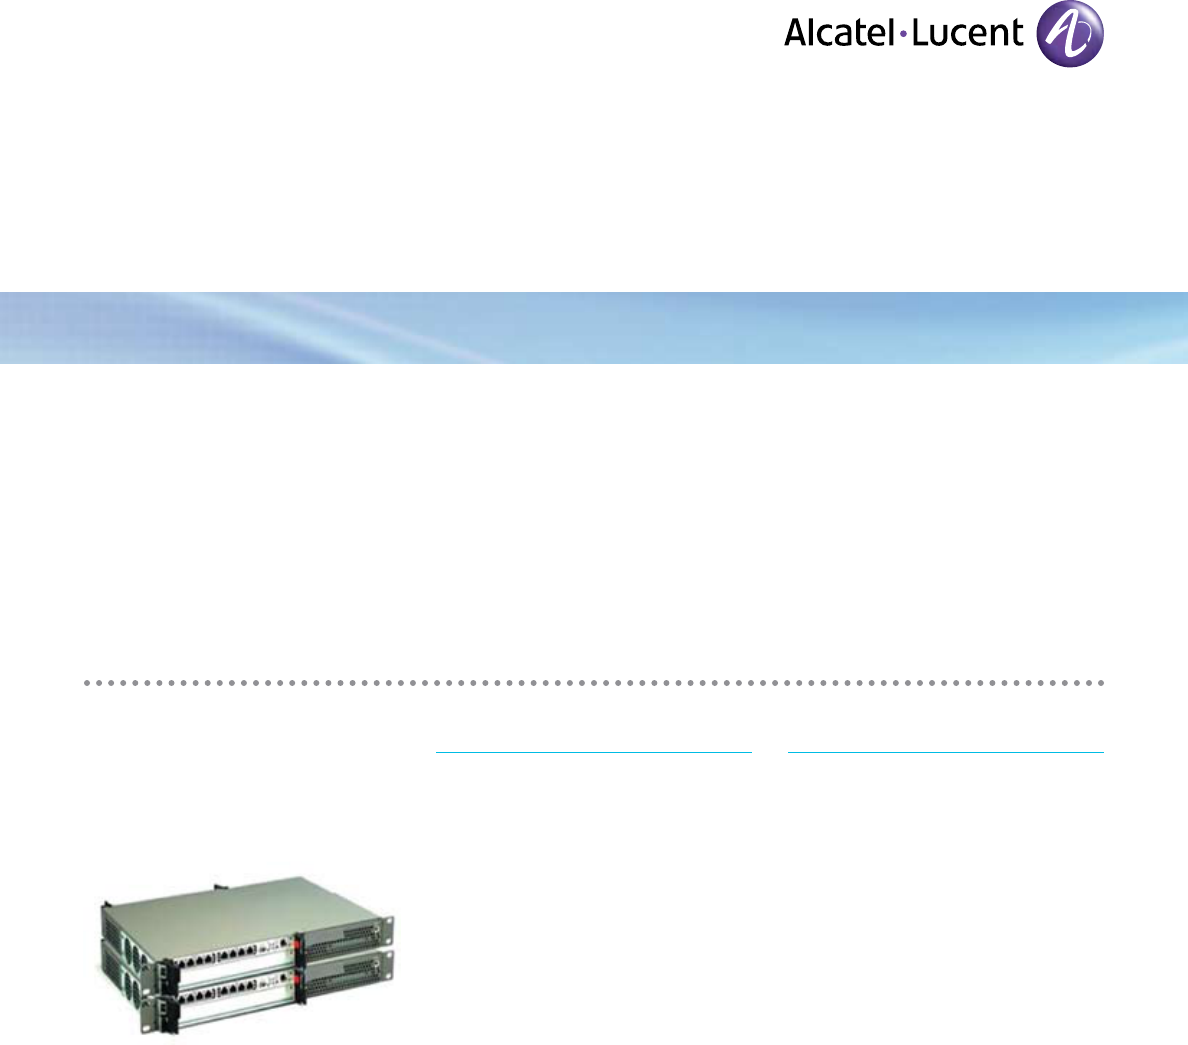 Alcatel-Lucent 5073 manual